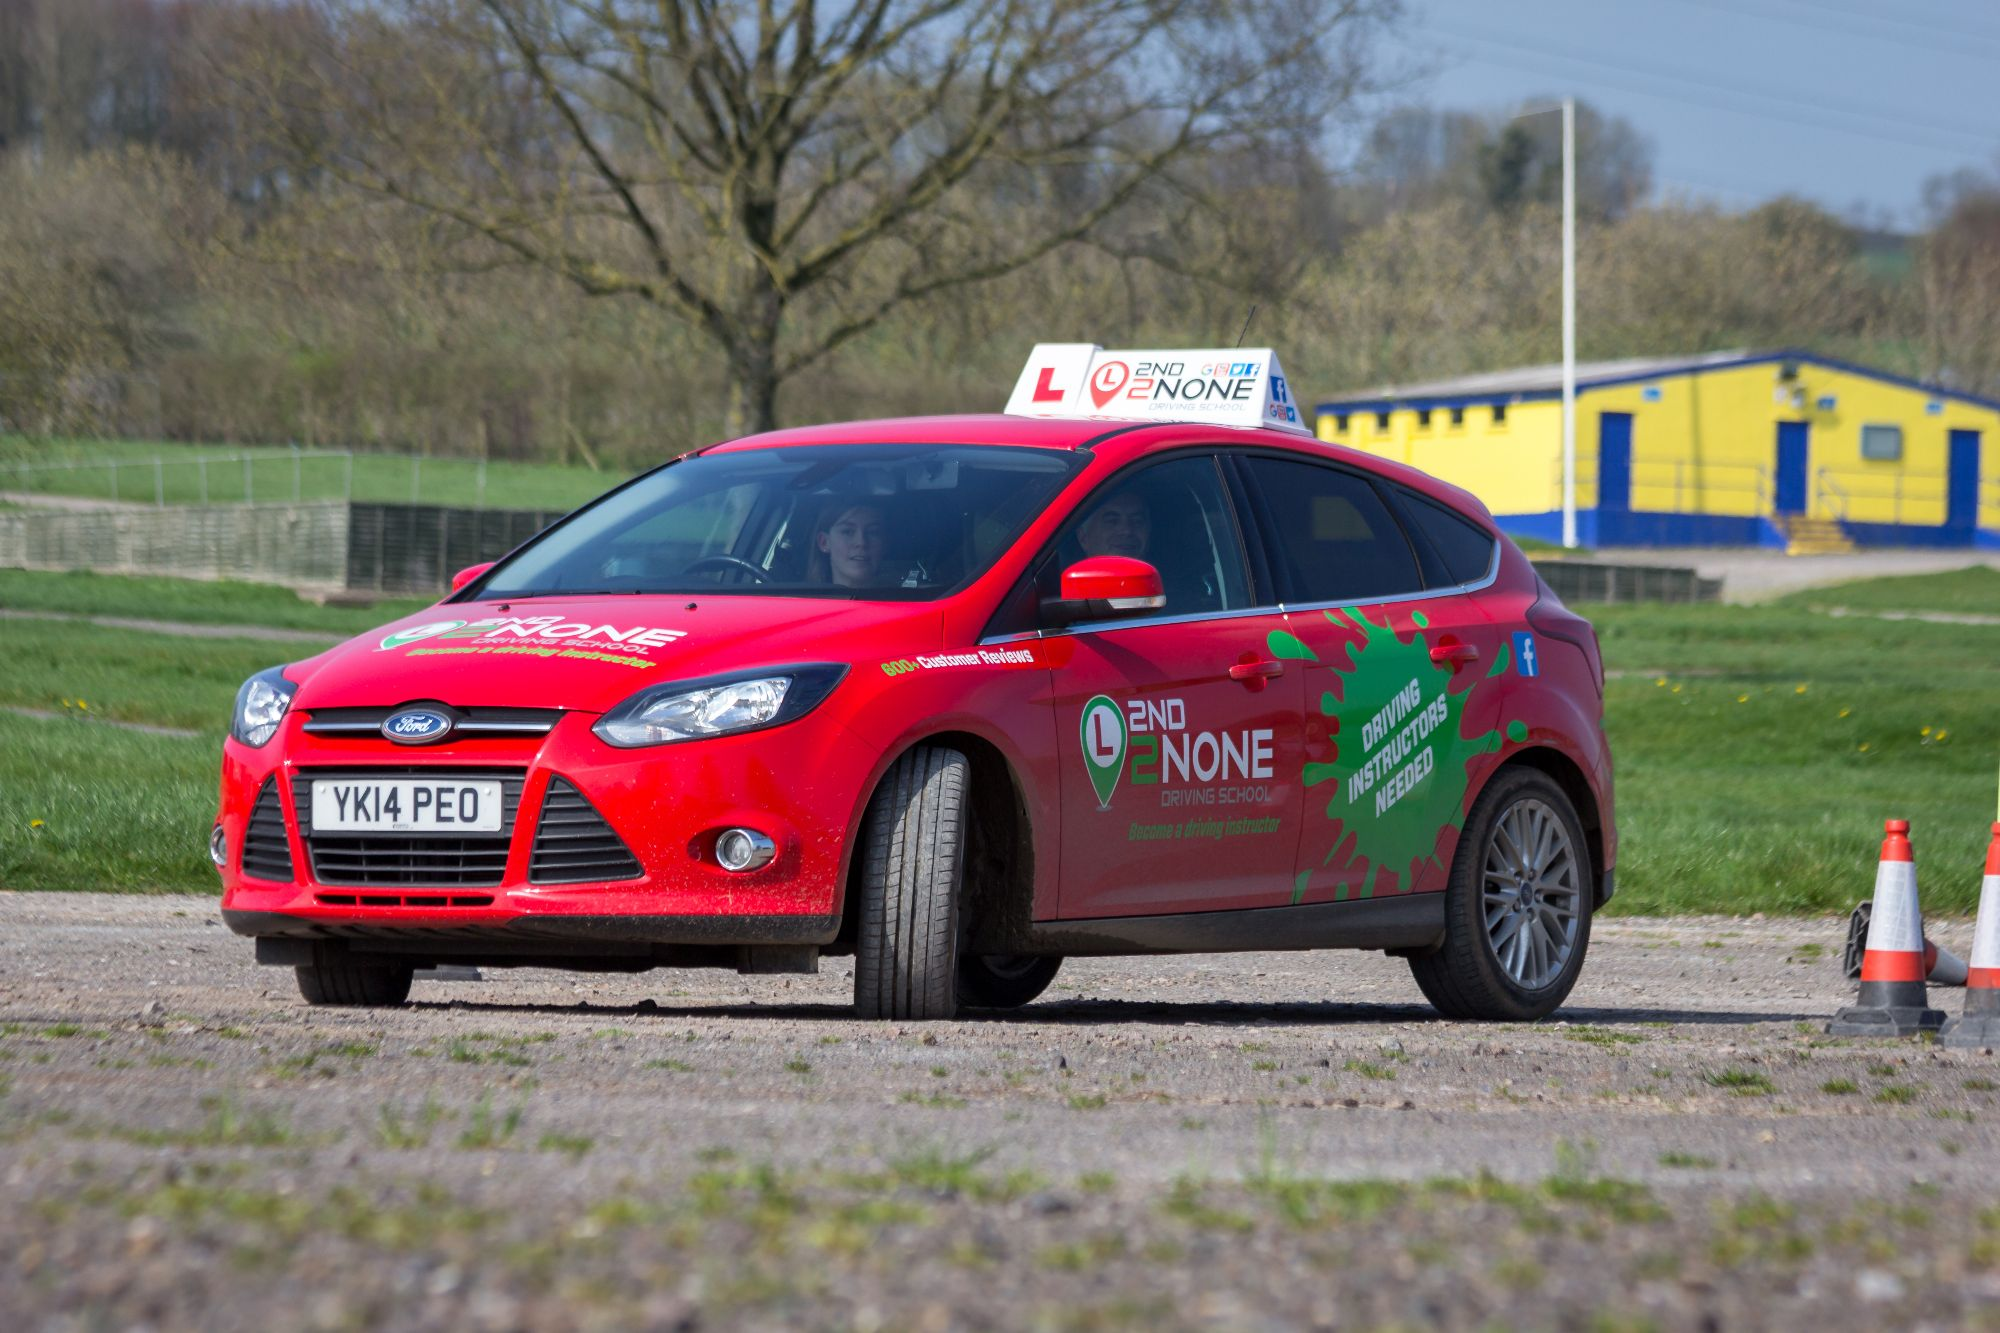 Under 17's Driving Lessons Midsomer Norton